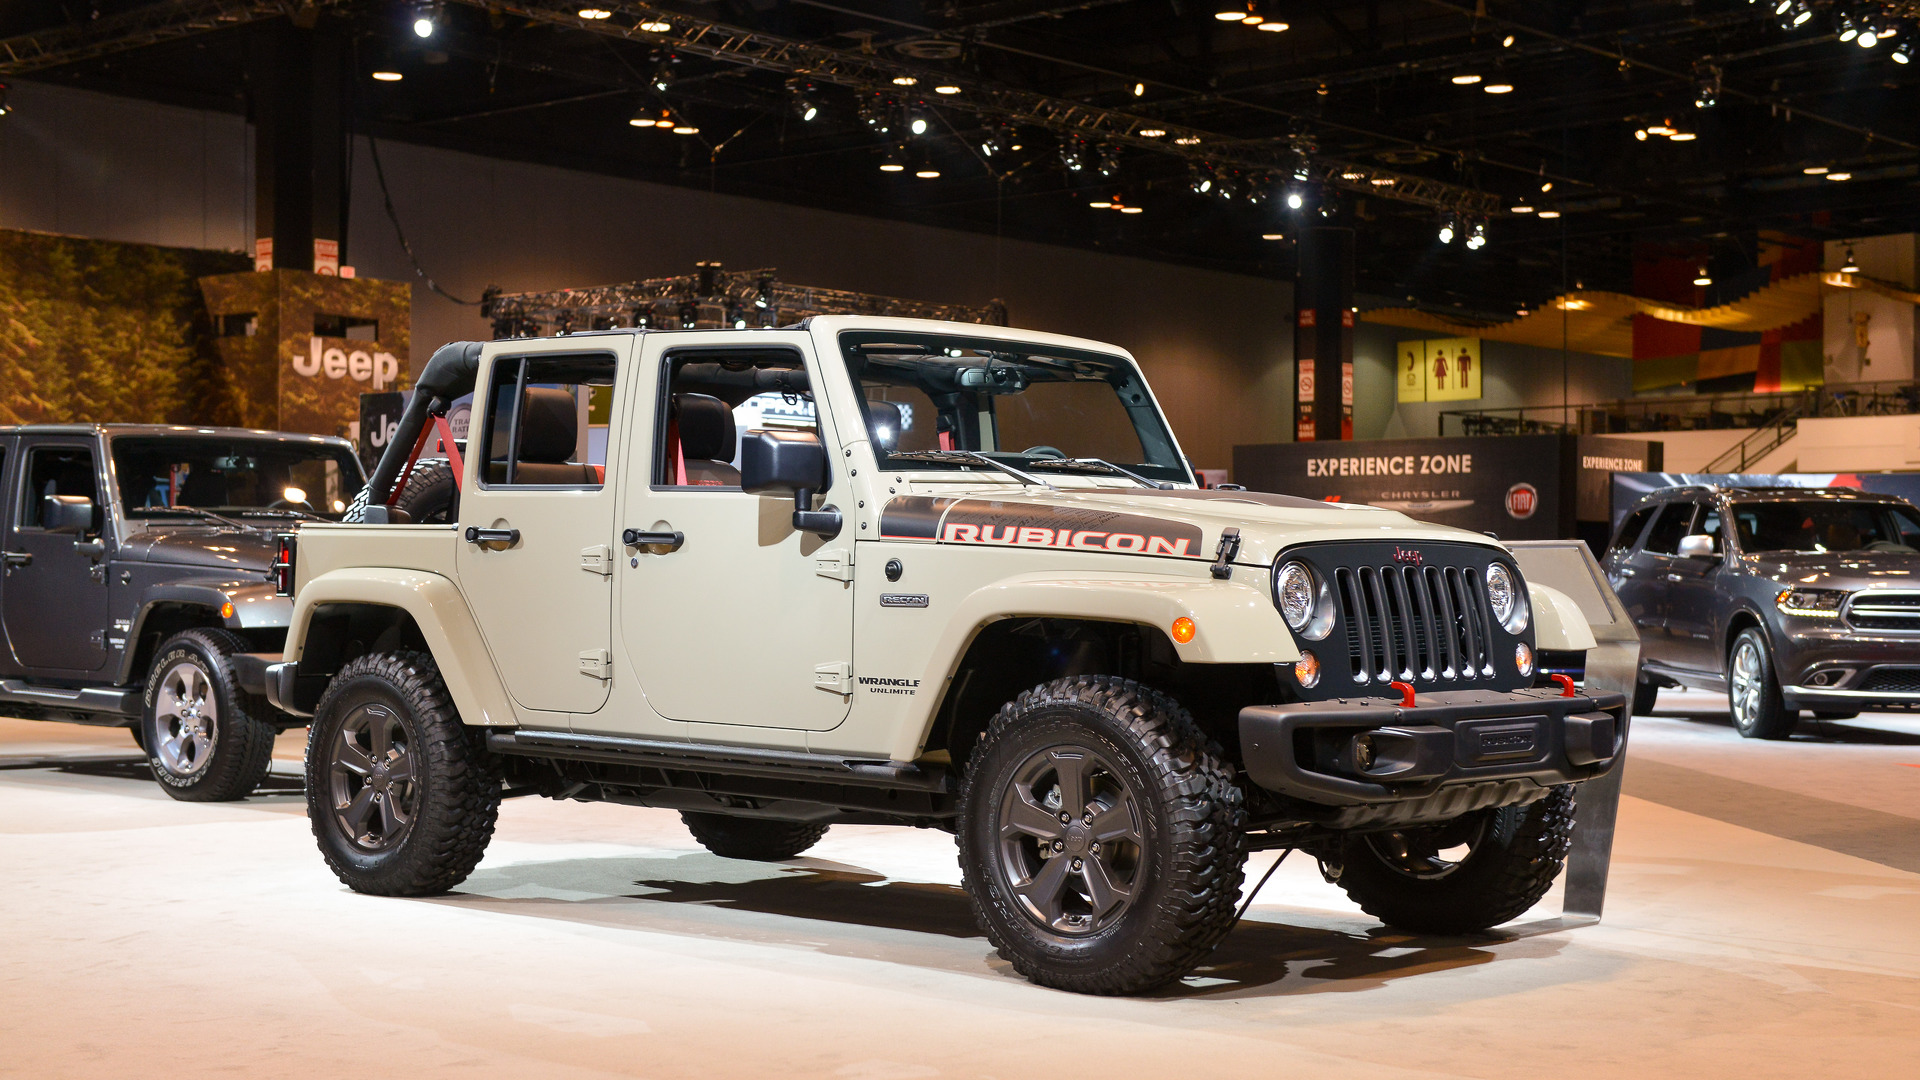 Jeep Wrangler Colors >> 6 details you might have missed on the Jeep Wrangler Rubicon Recon